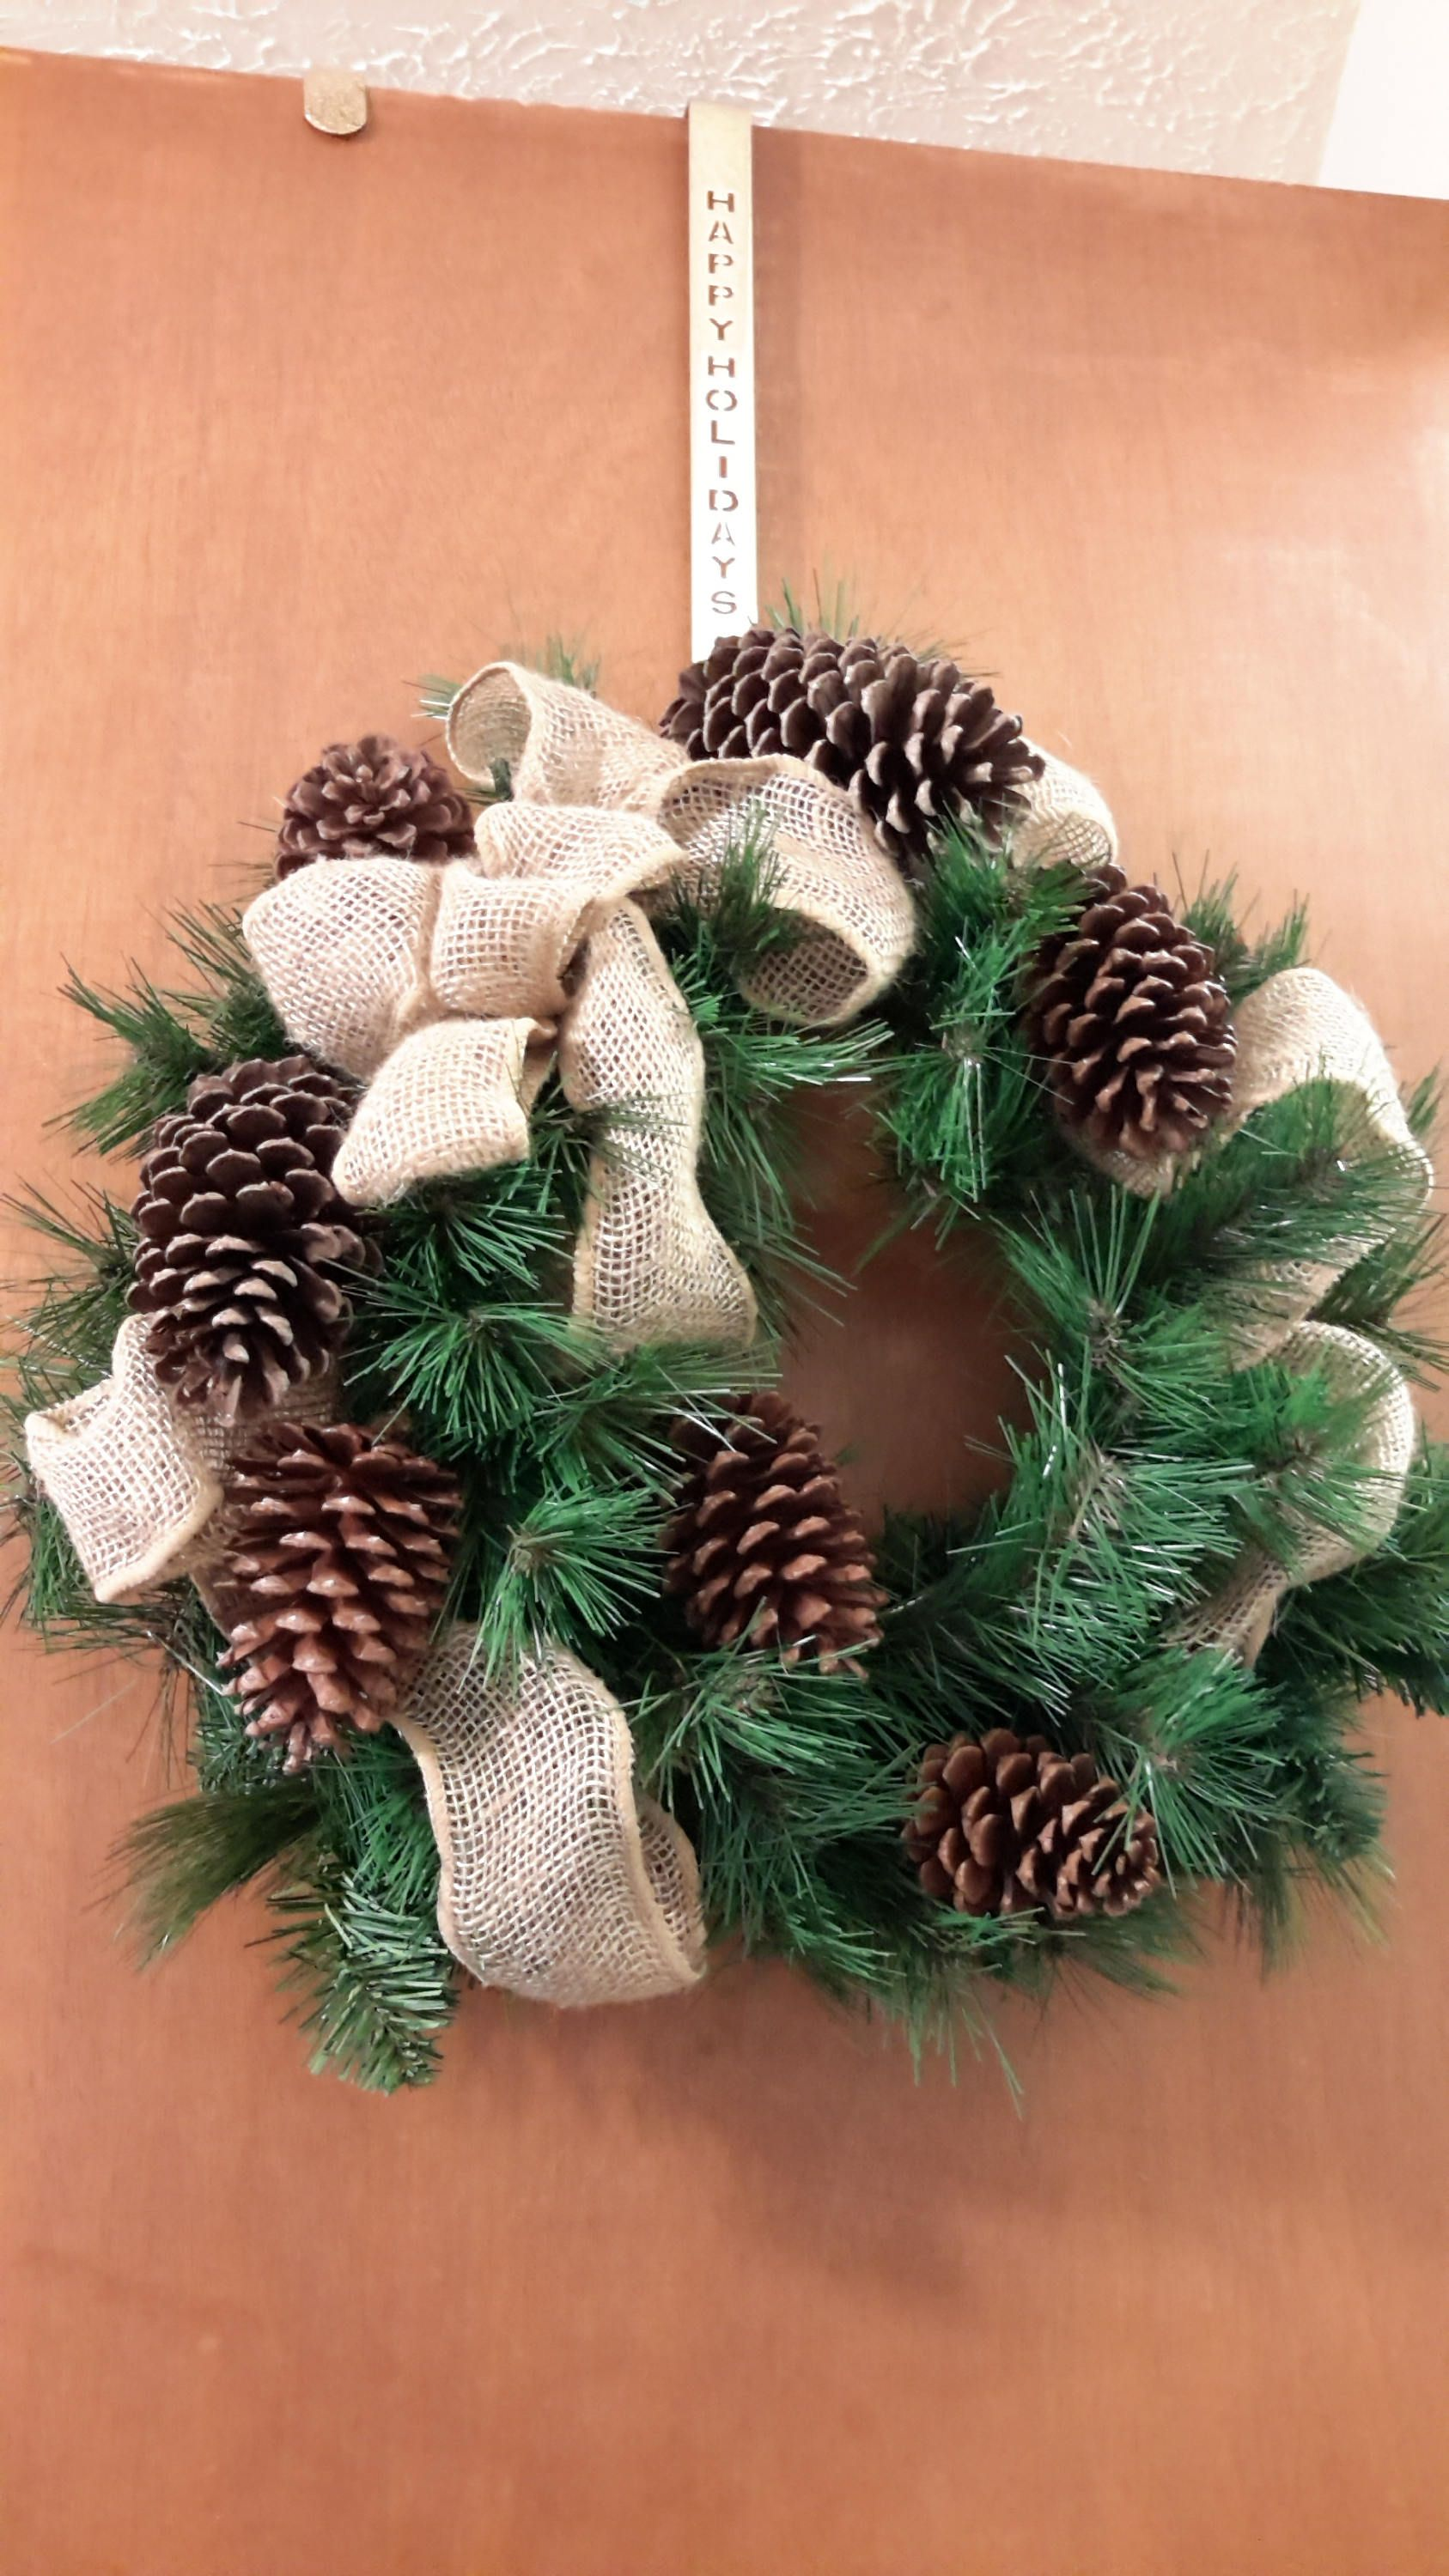 christmas wreath minimalist style wreath rustic wreath by goodwreathsbykathy on etsy - Christmas Wreaths Etsy